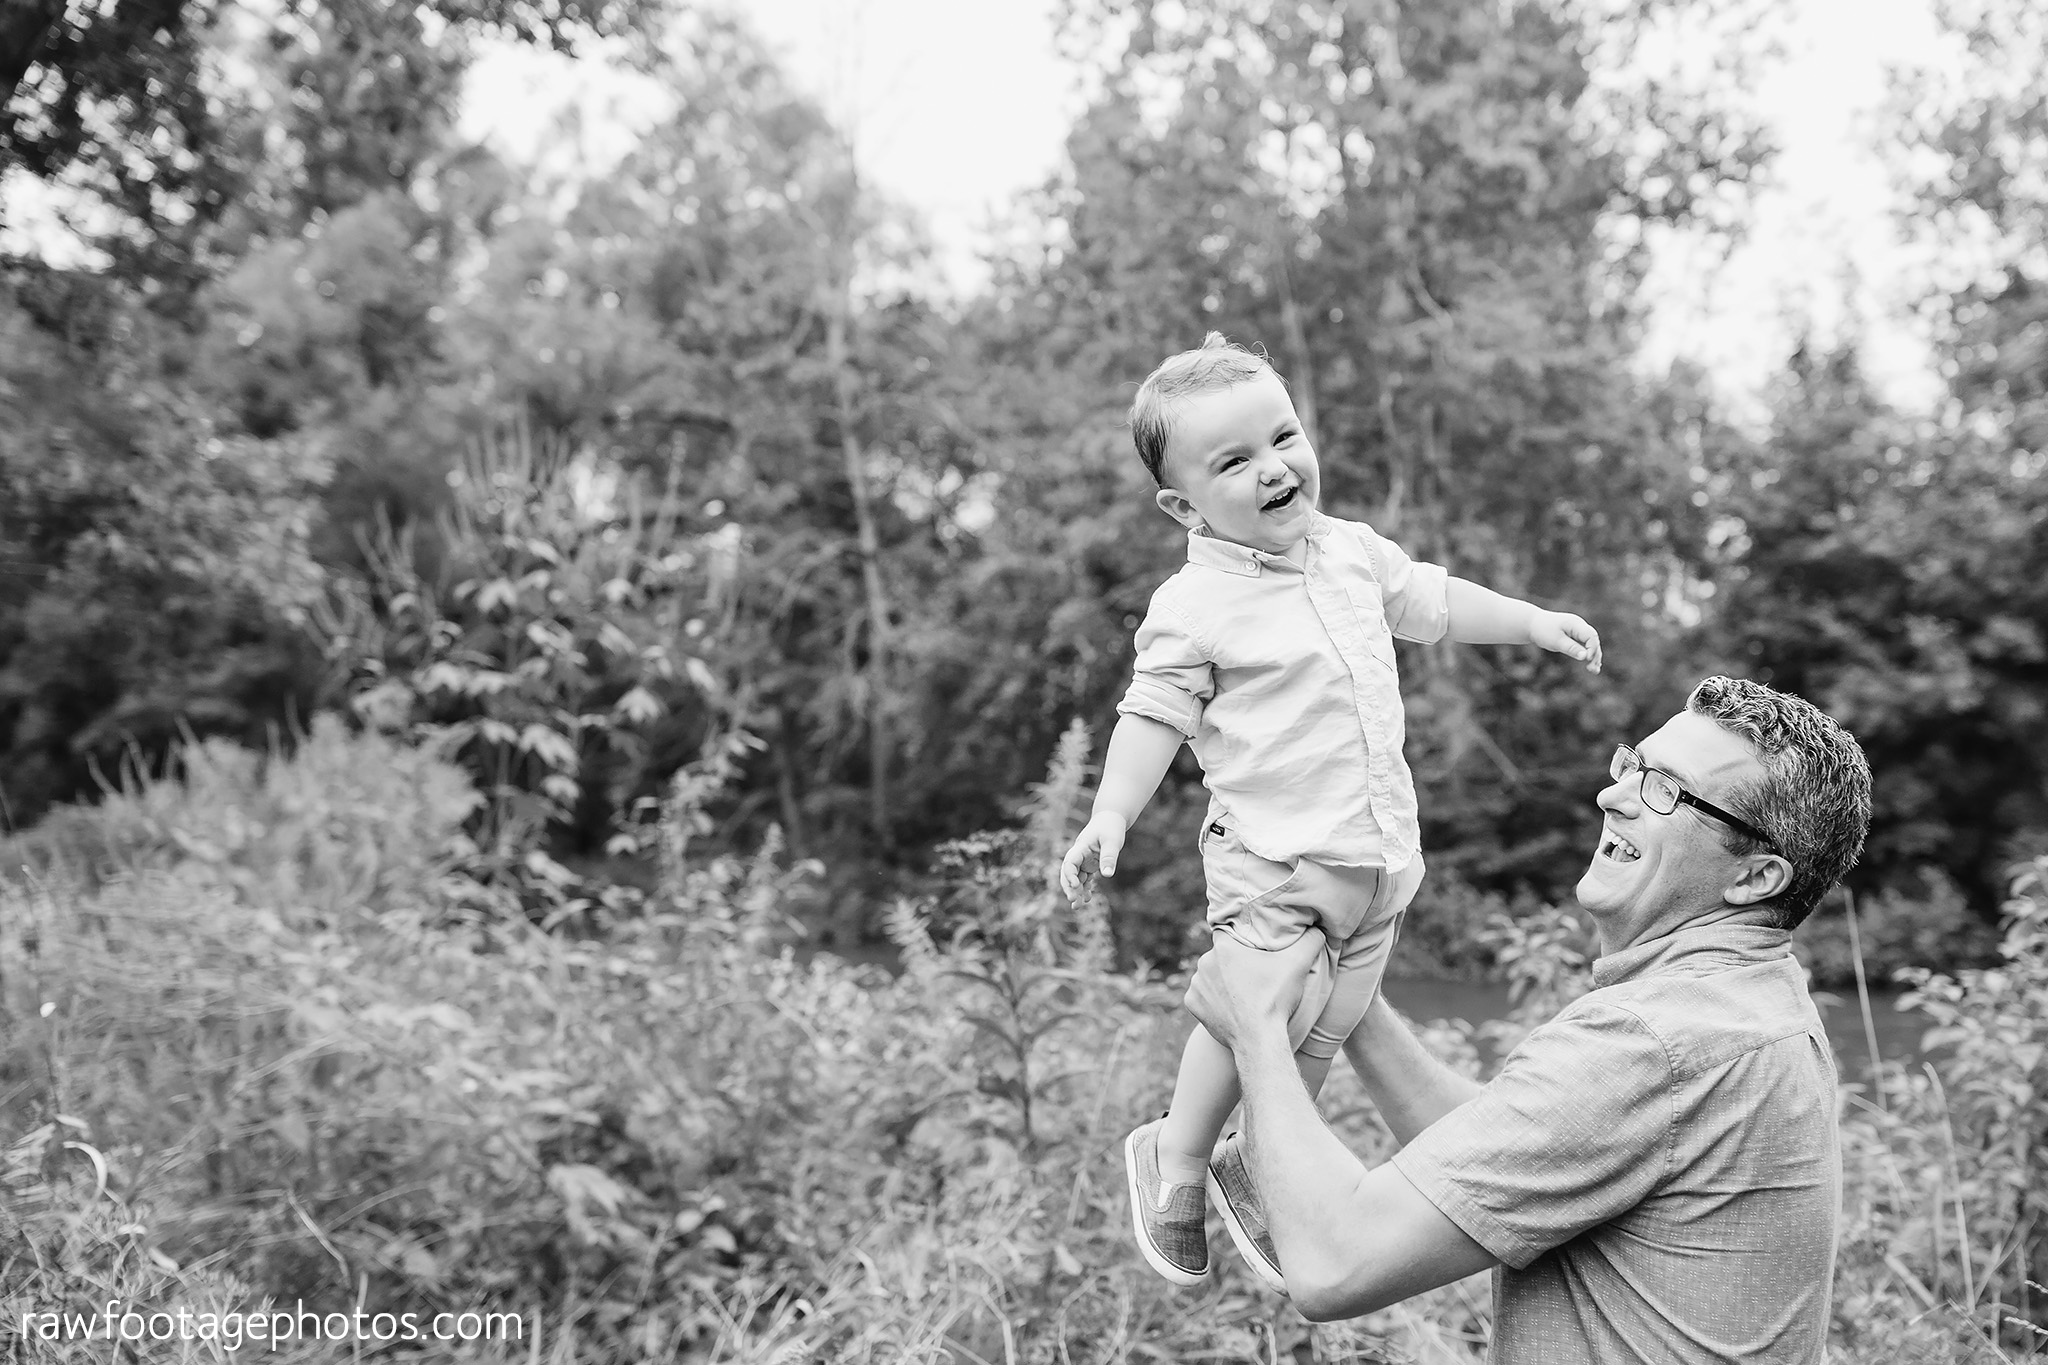 london_ontario_family_photography-lifestyle_photography-maternity_photos-raw_footage_photography-best_of_2018053.jpg